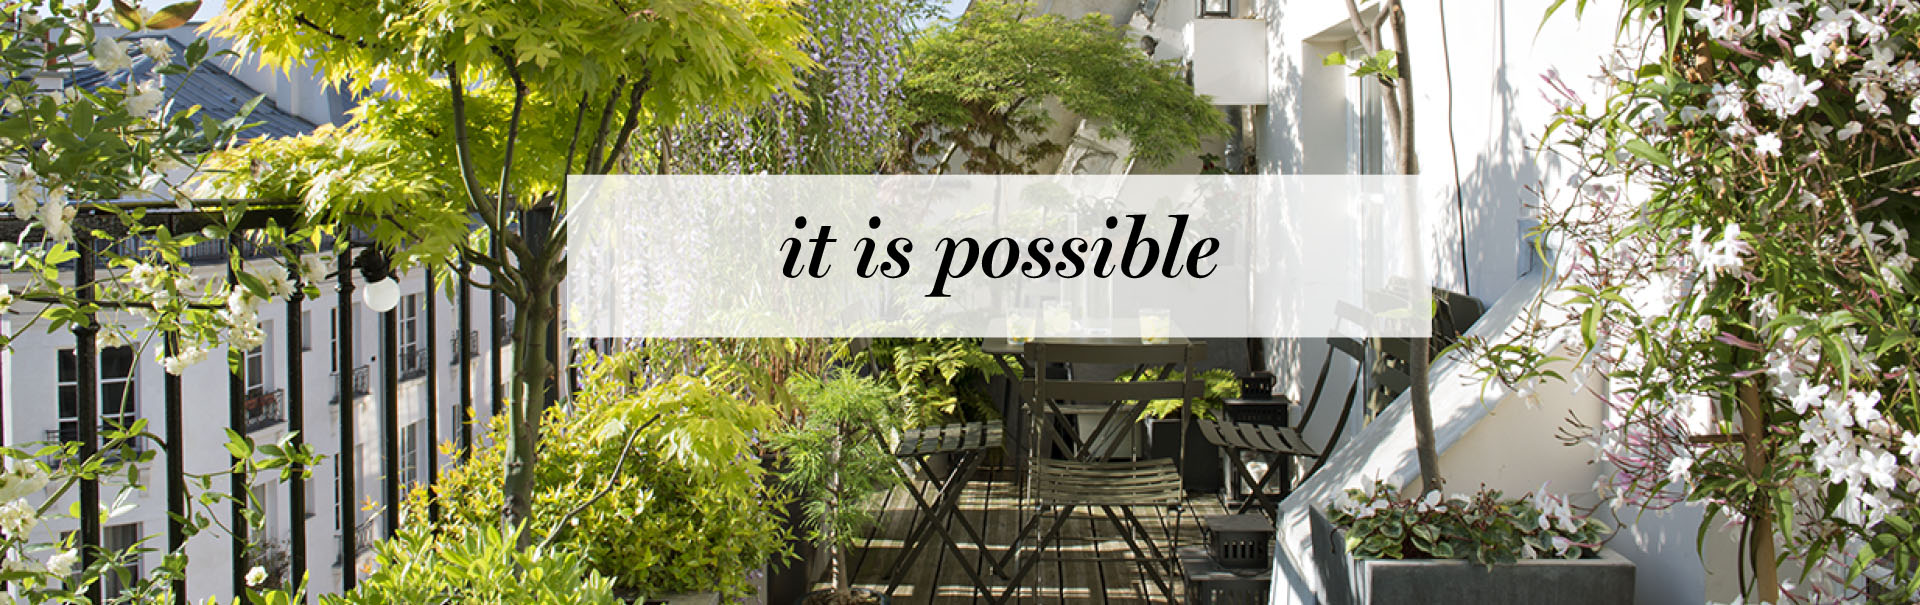 itispossible-1